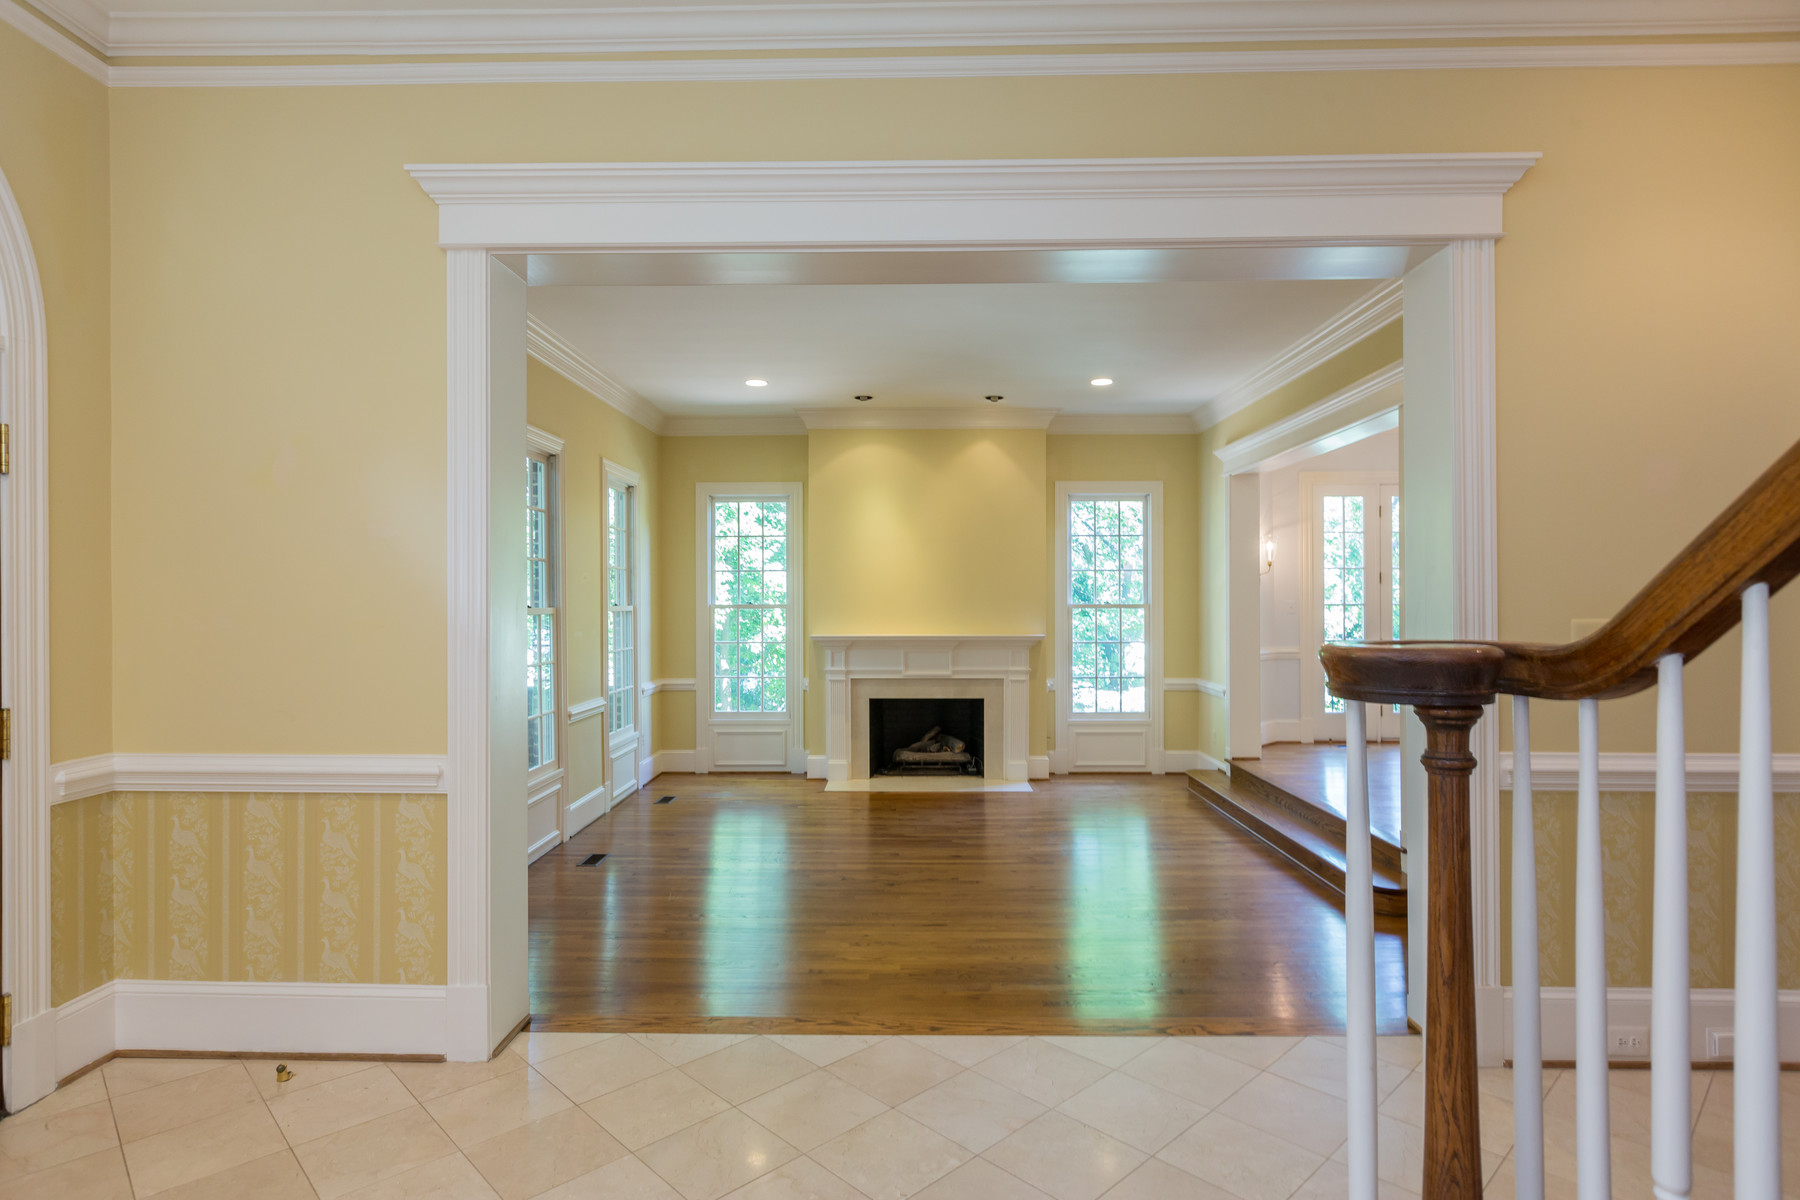 Additional photo for property listing at 1209 Stuart Robeson Drive, Mclean  McLean, 弗吉尼亞州 22101 美國